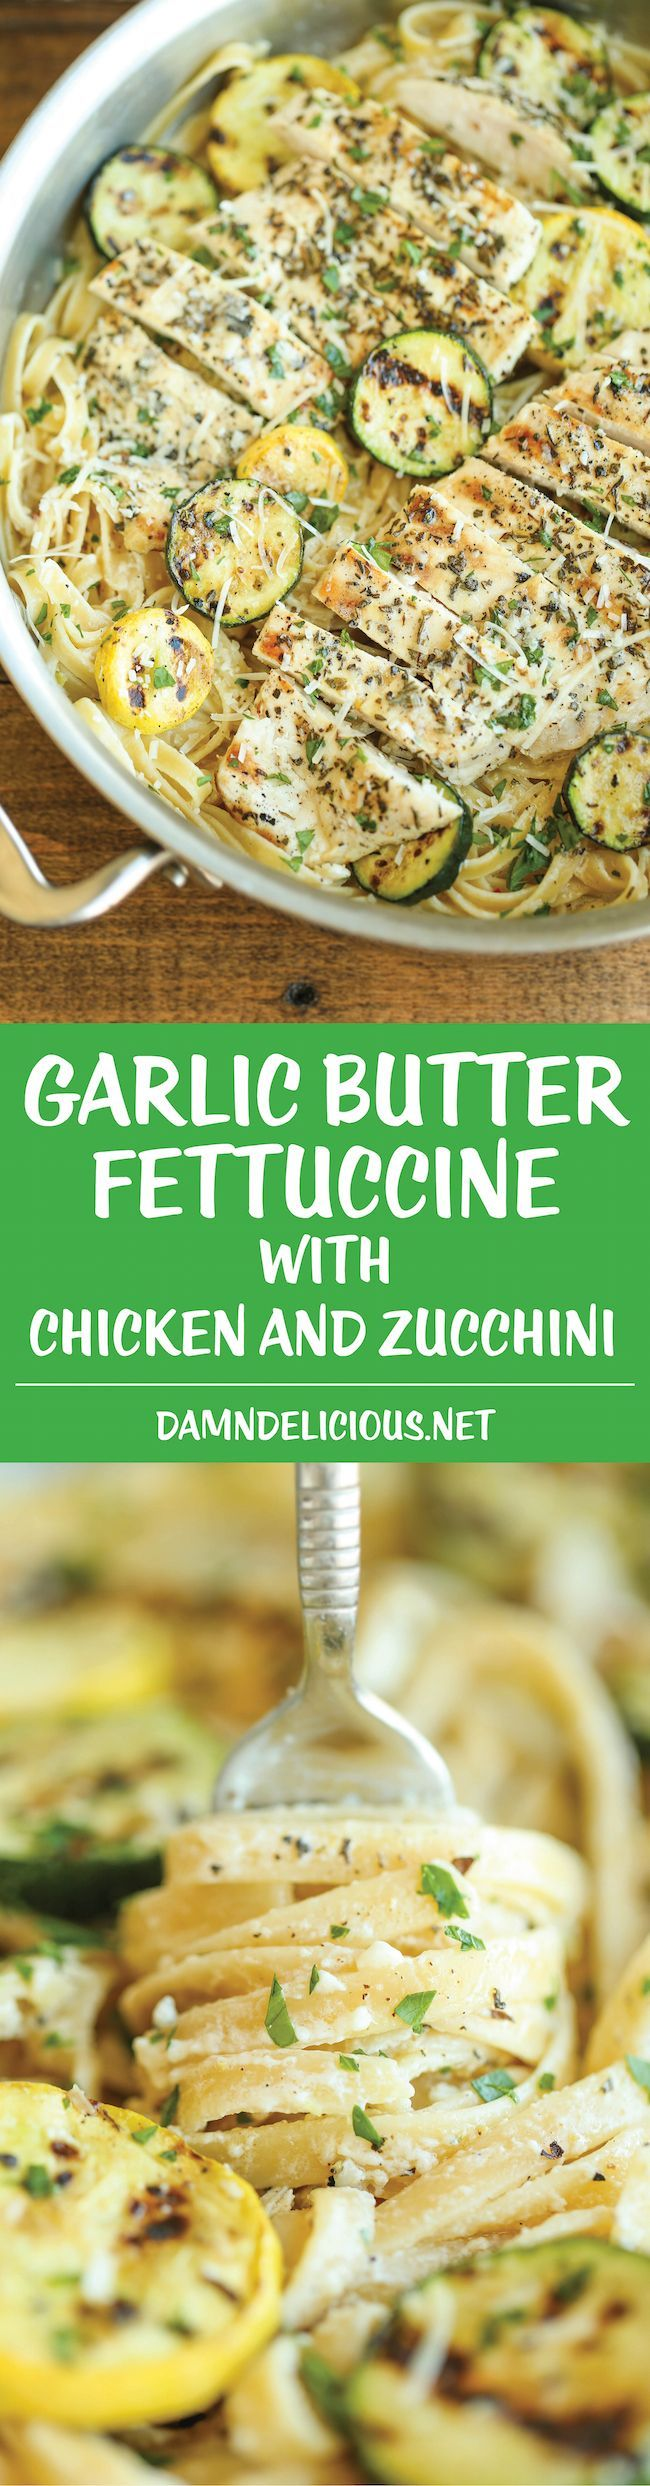 Garlic Butter Fettuccine with Chicken and Zucchini - Just gotta add some mushrooms! buttery, so garlicky, and just so creamy! Made with lemon-herb chicken and crisp-tender zucchini. Very tasty!